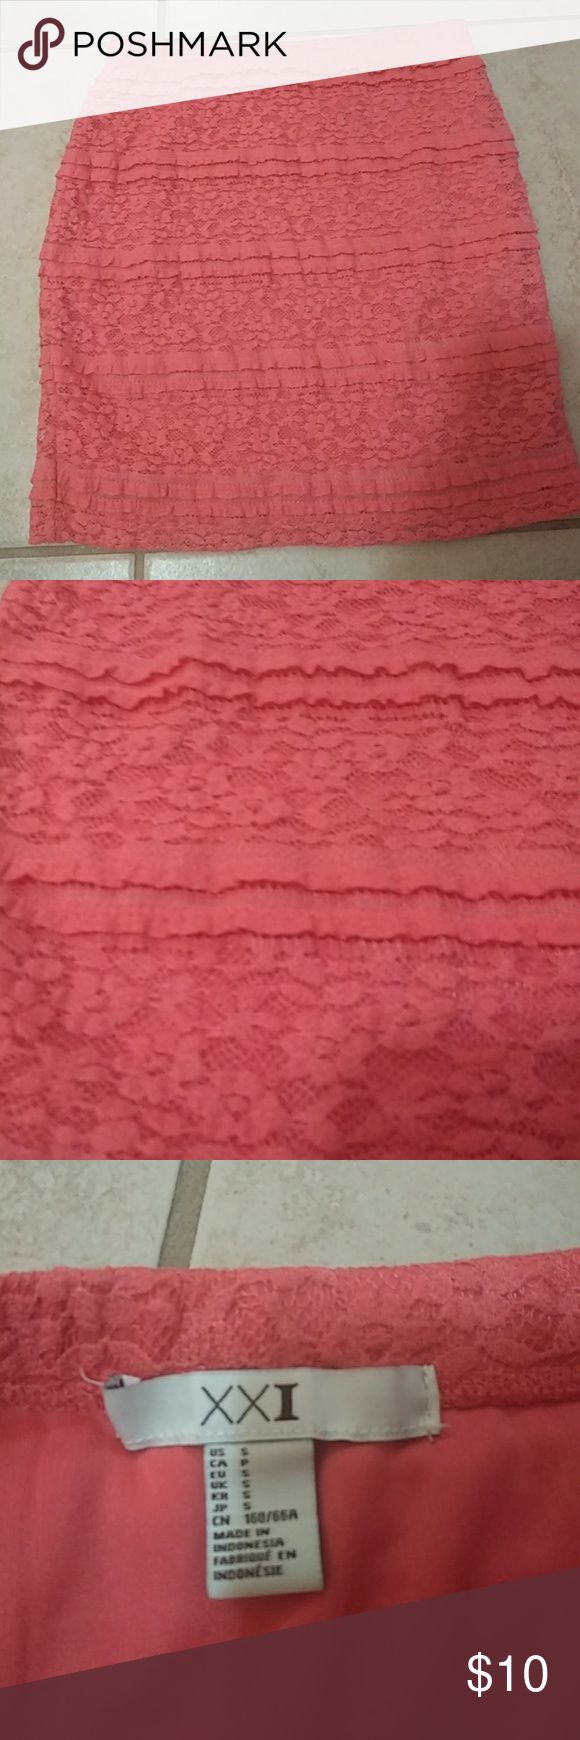 Coral lace pencil skirt size small This comfy and stylist slim-fitting skirt has a stretch elastic waist. Horizontal lace panels with miniature ruffles add a sexy vibe. Coral color stands out and is perfect for spring and summer! Lined for comfort. No pulls on the lace or any stains. Perfect condition. XXI Skirts Pencil